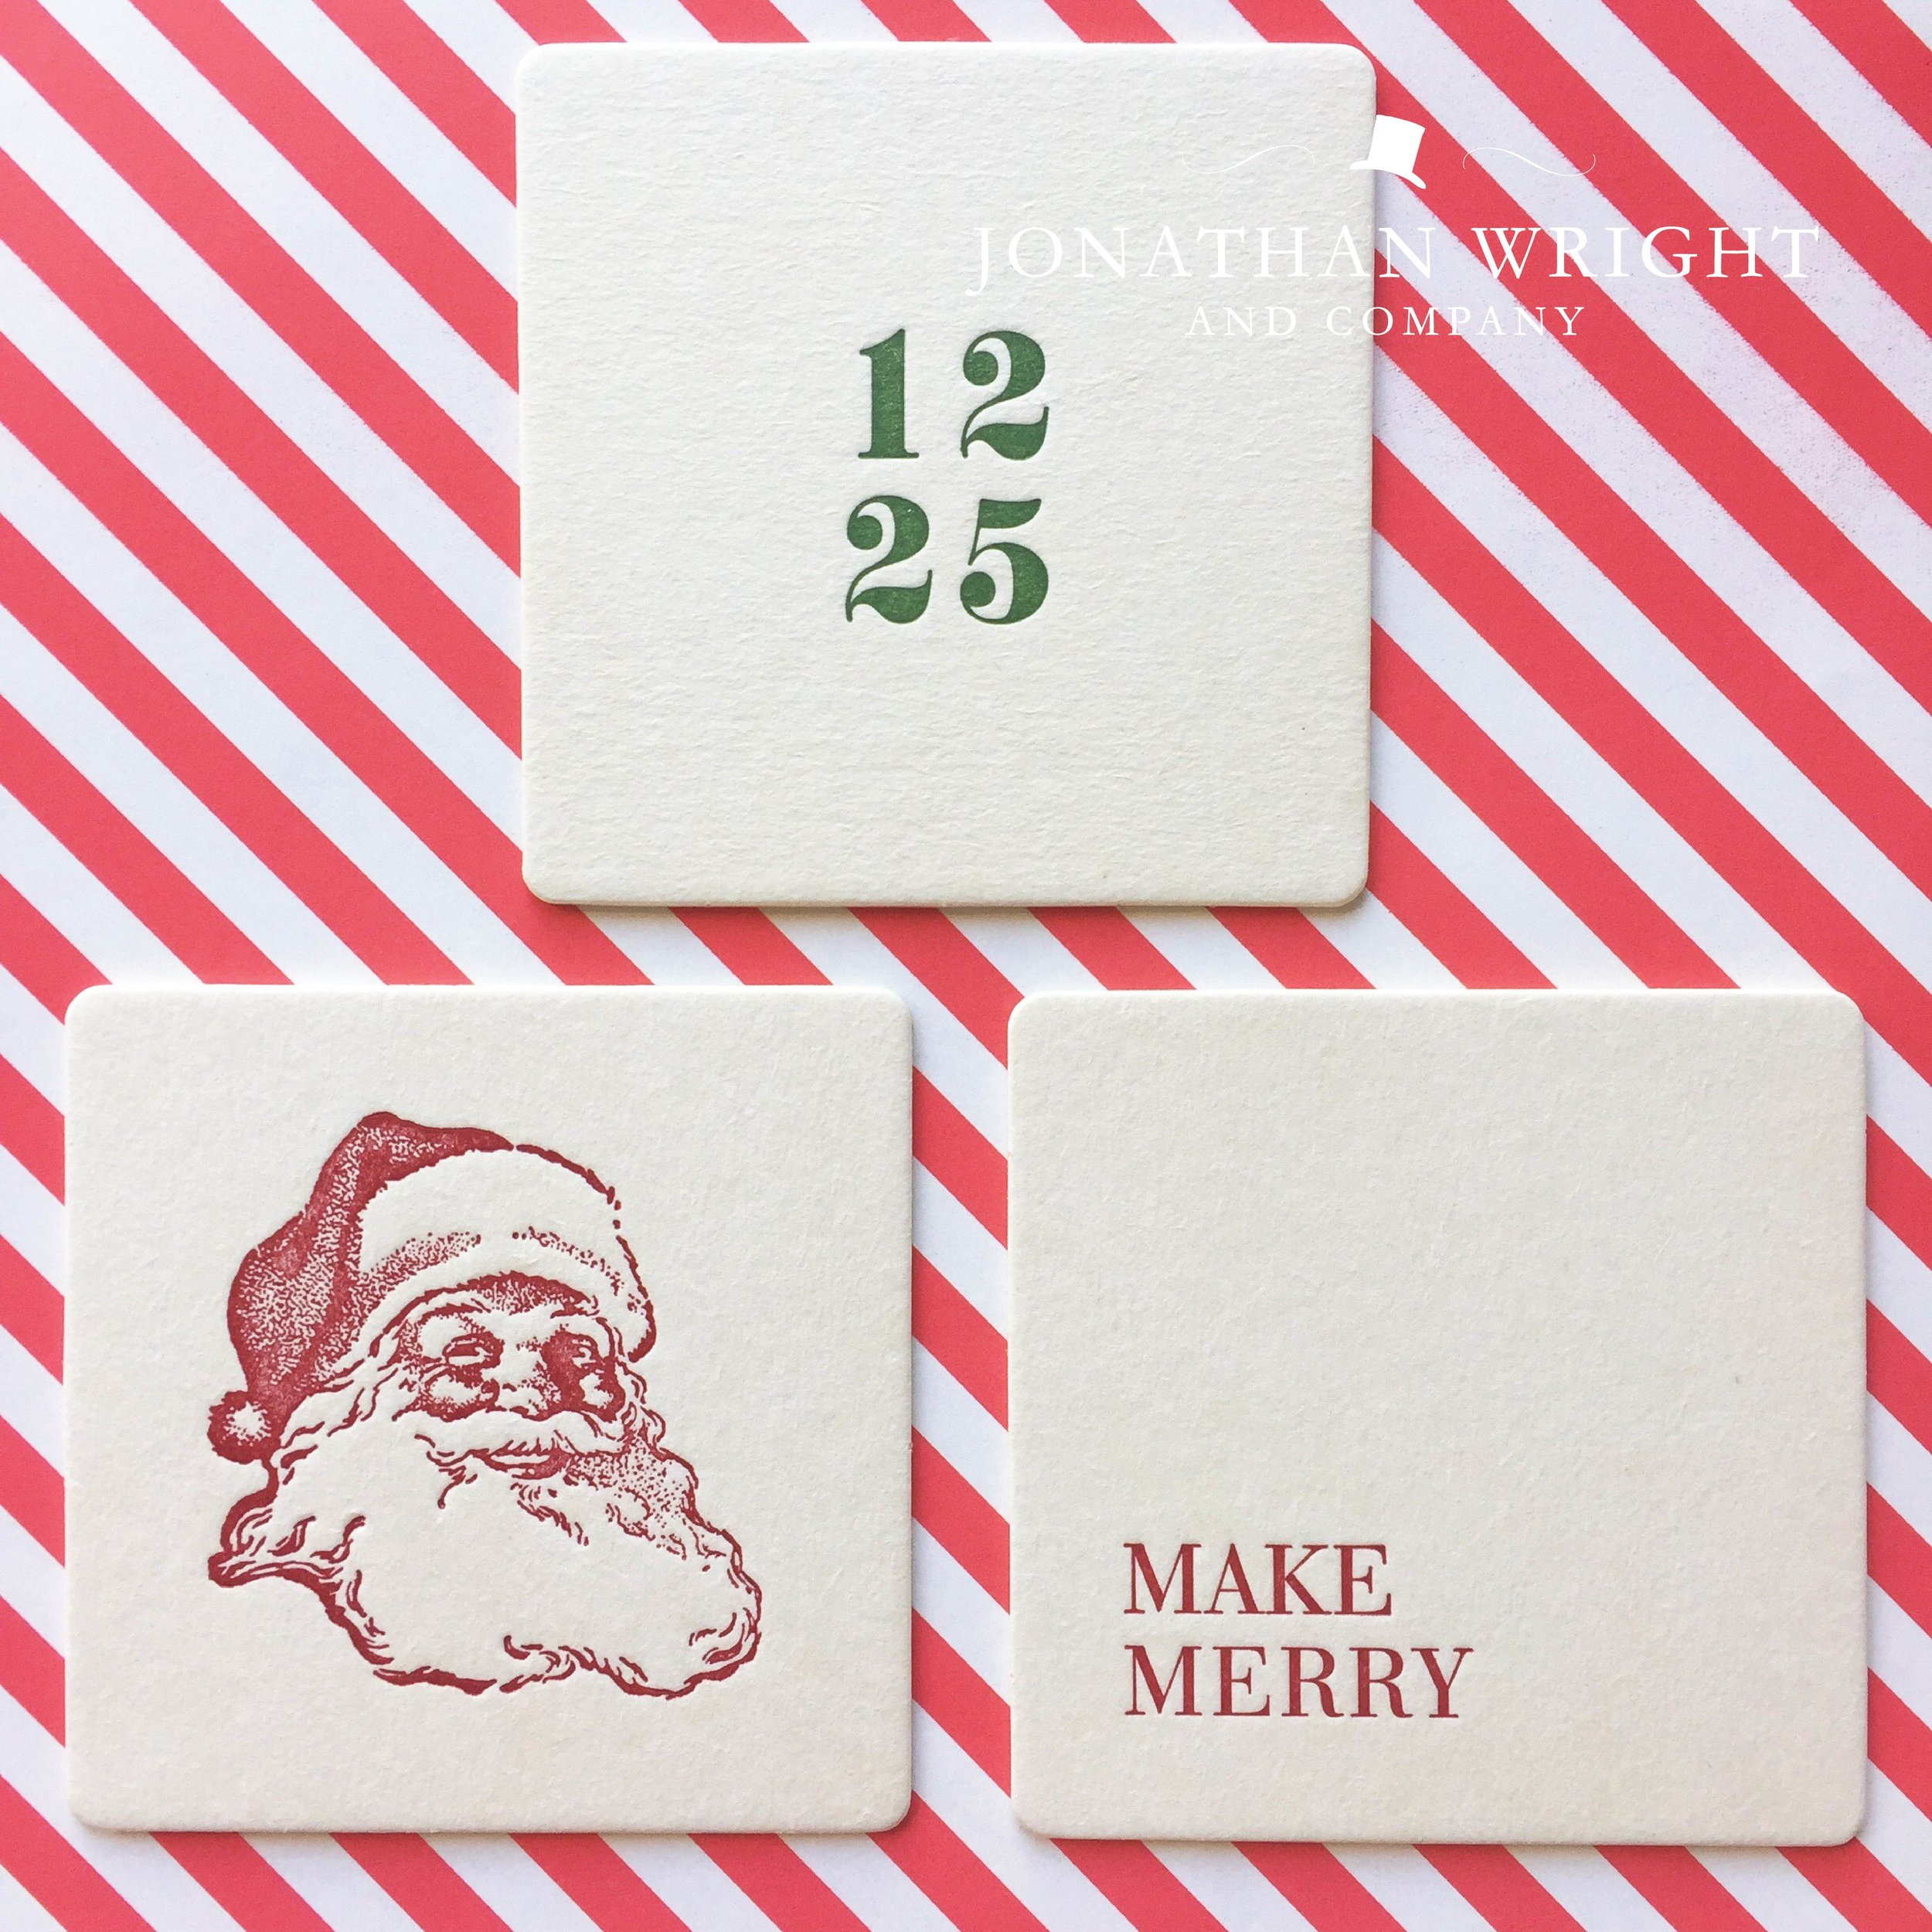 SANTA HOLIDAY COASTERS.jpg